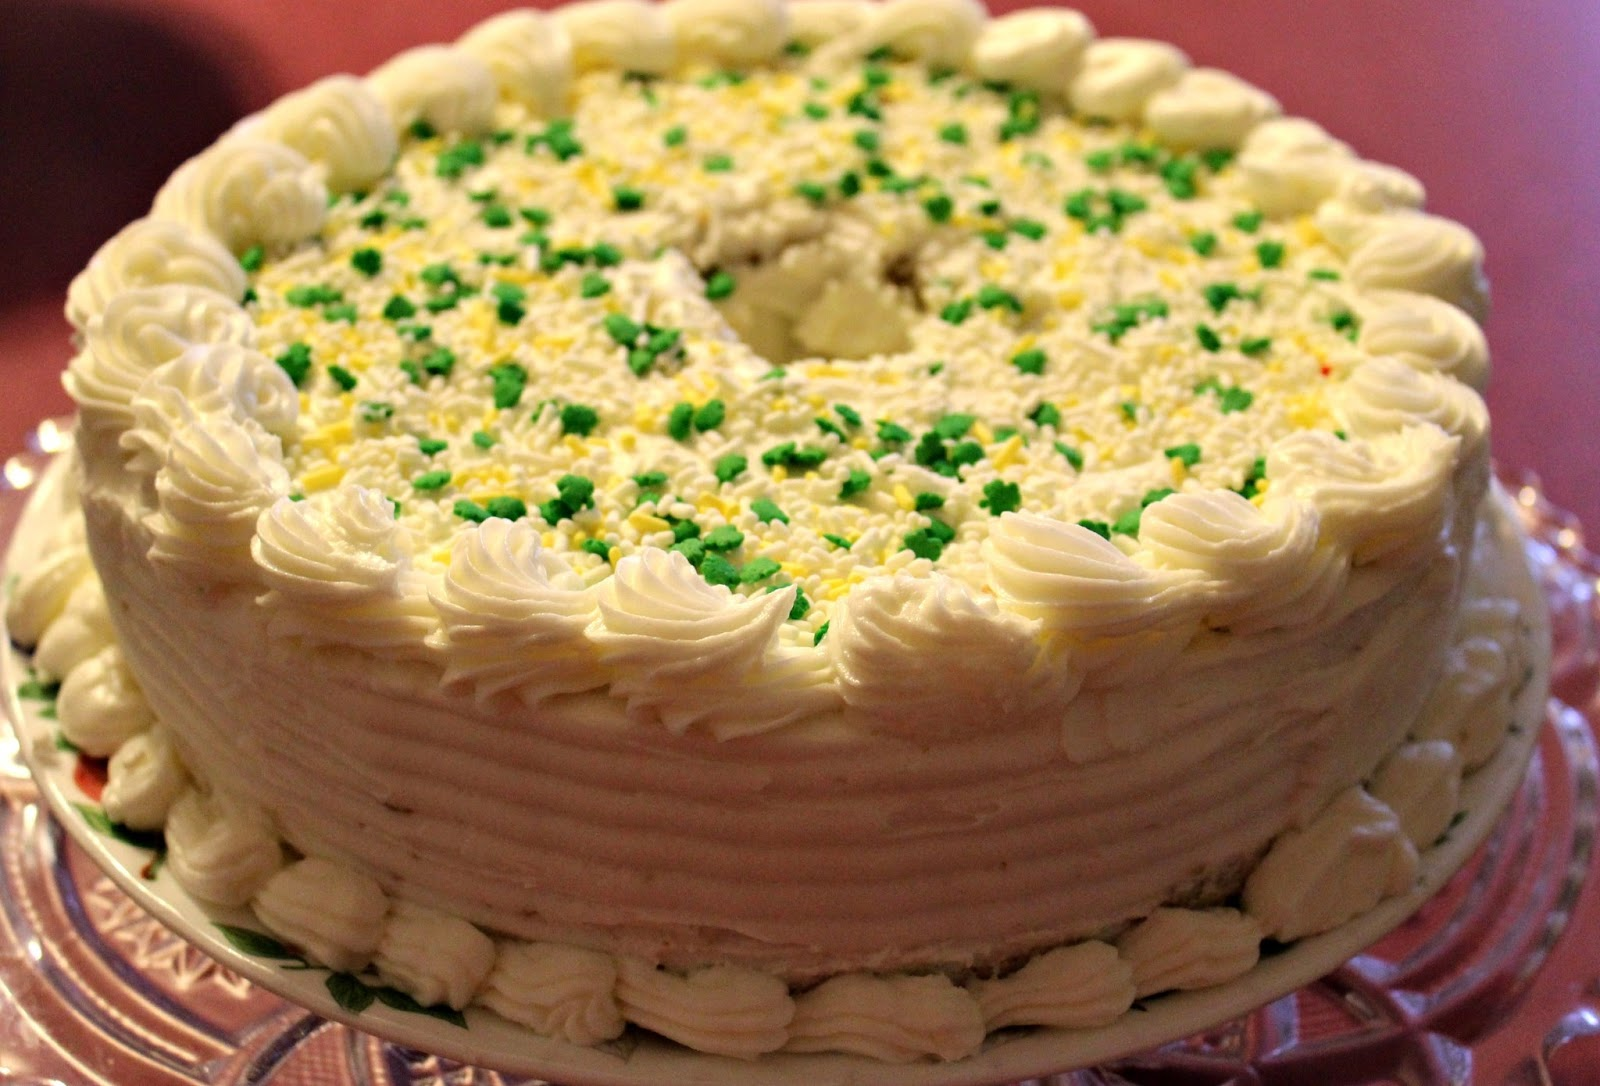 how to make pistachio cake and frosting